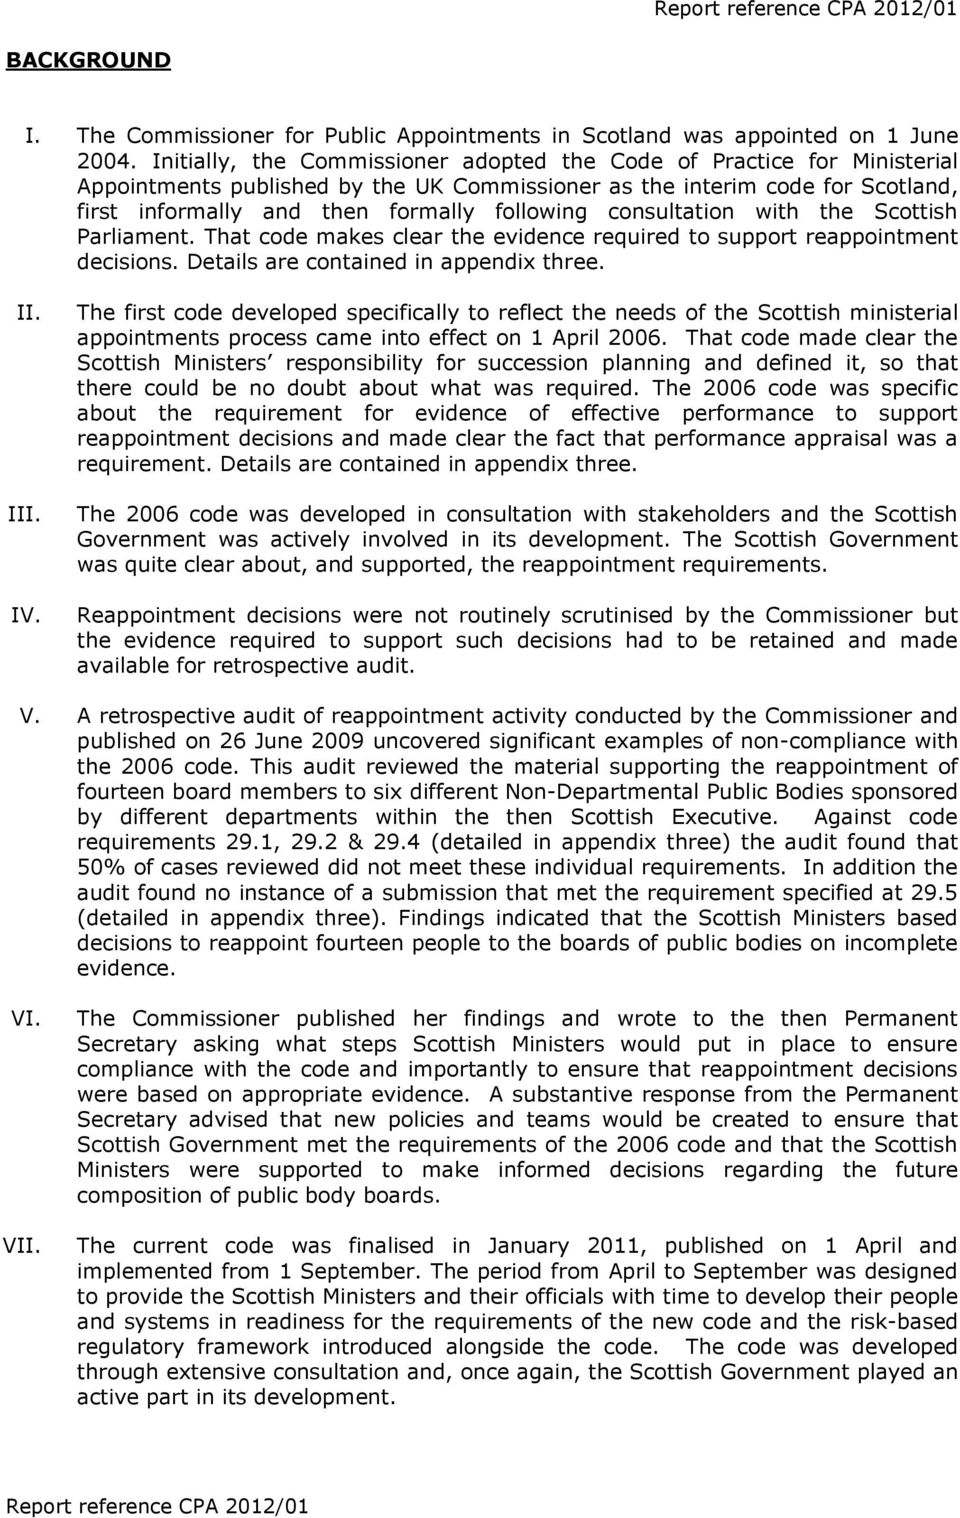 consultation with the Scottish Parliament. That code makes clear the evidence required to support reappointment decisions. Details are contained in appendix three. II. III. IV.